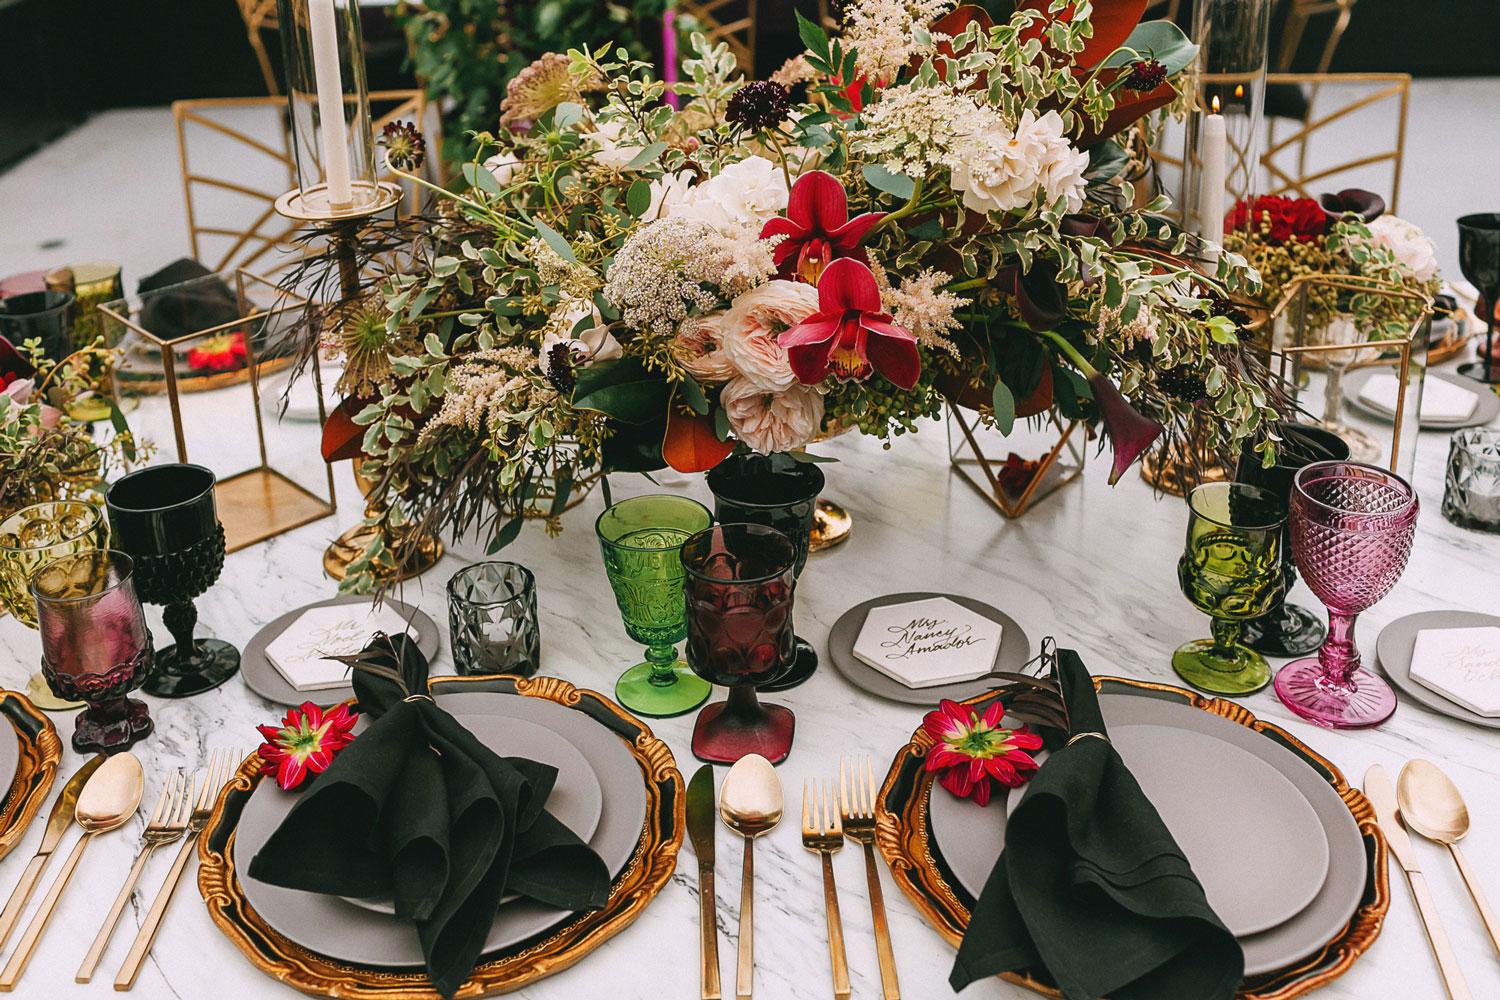 Marble wedding reception table with no linens